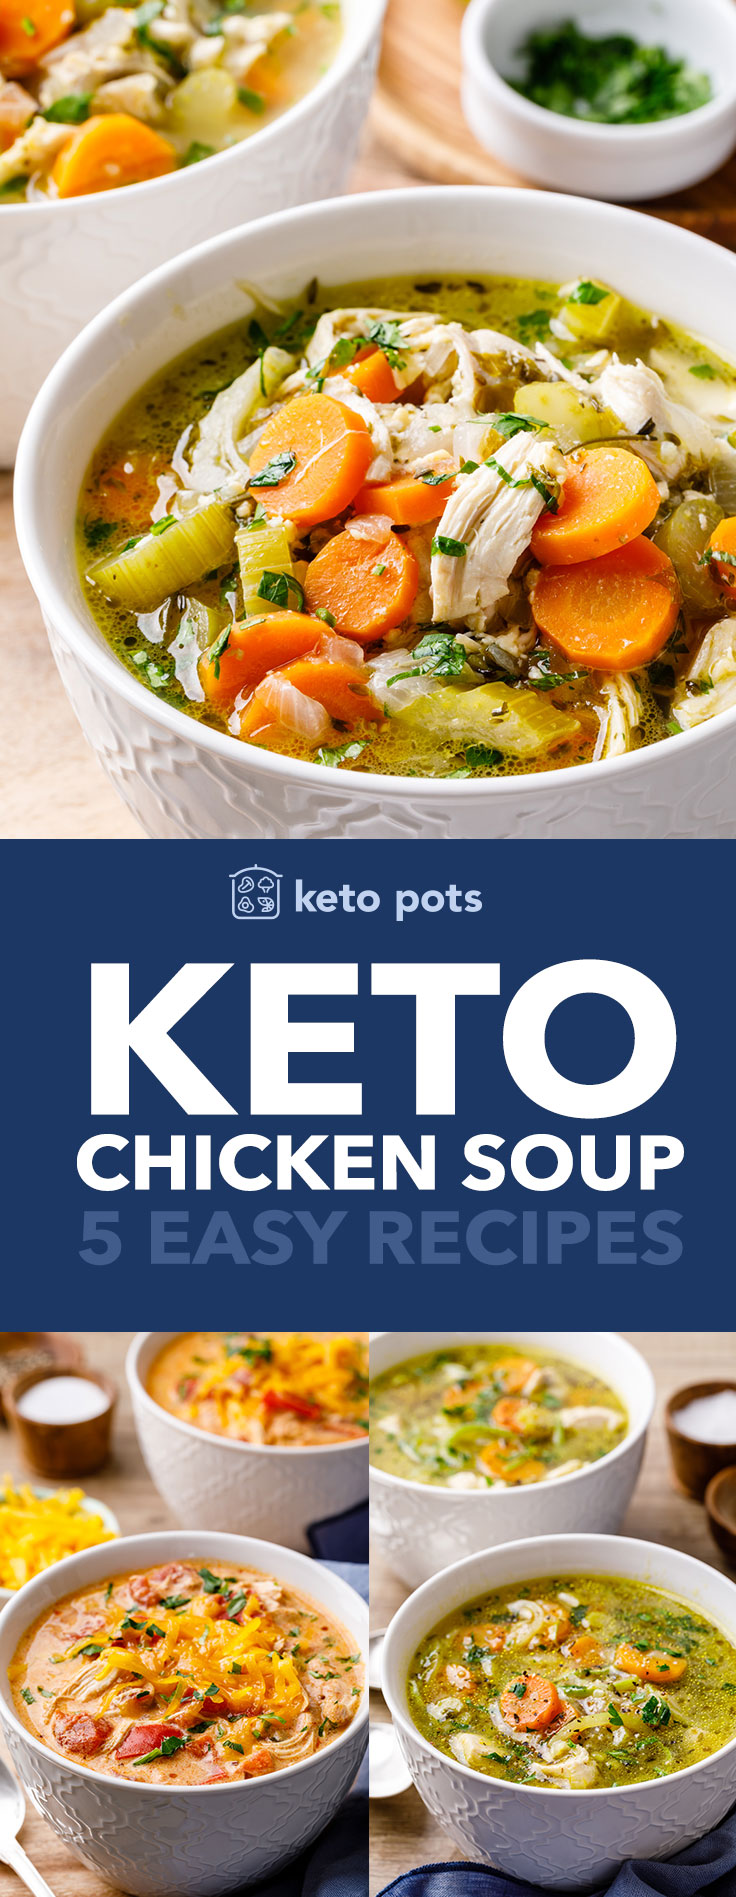 The best easy keto chicken soup recipes.